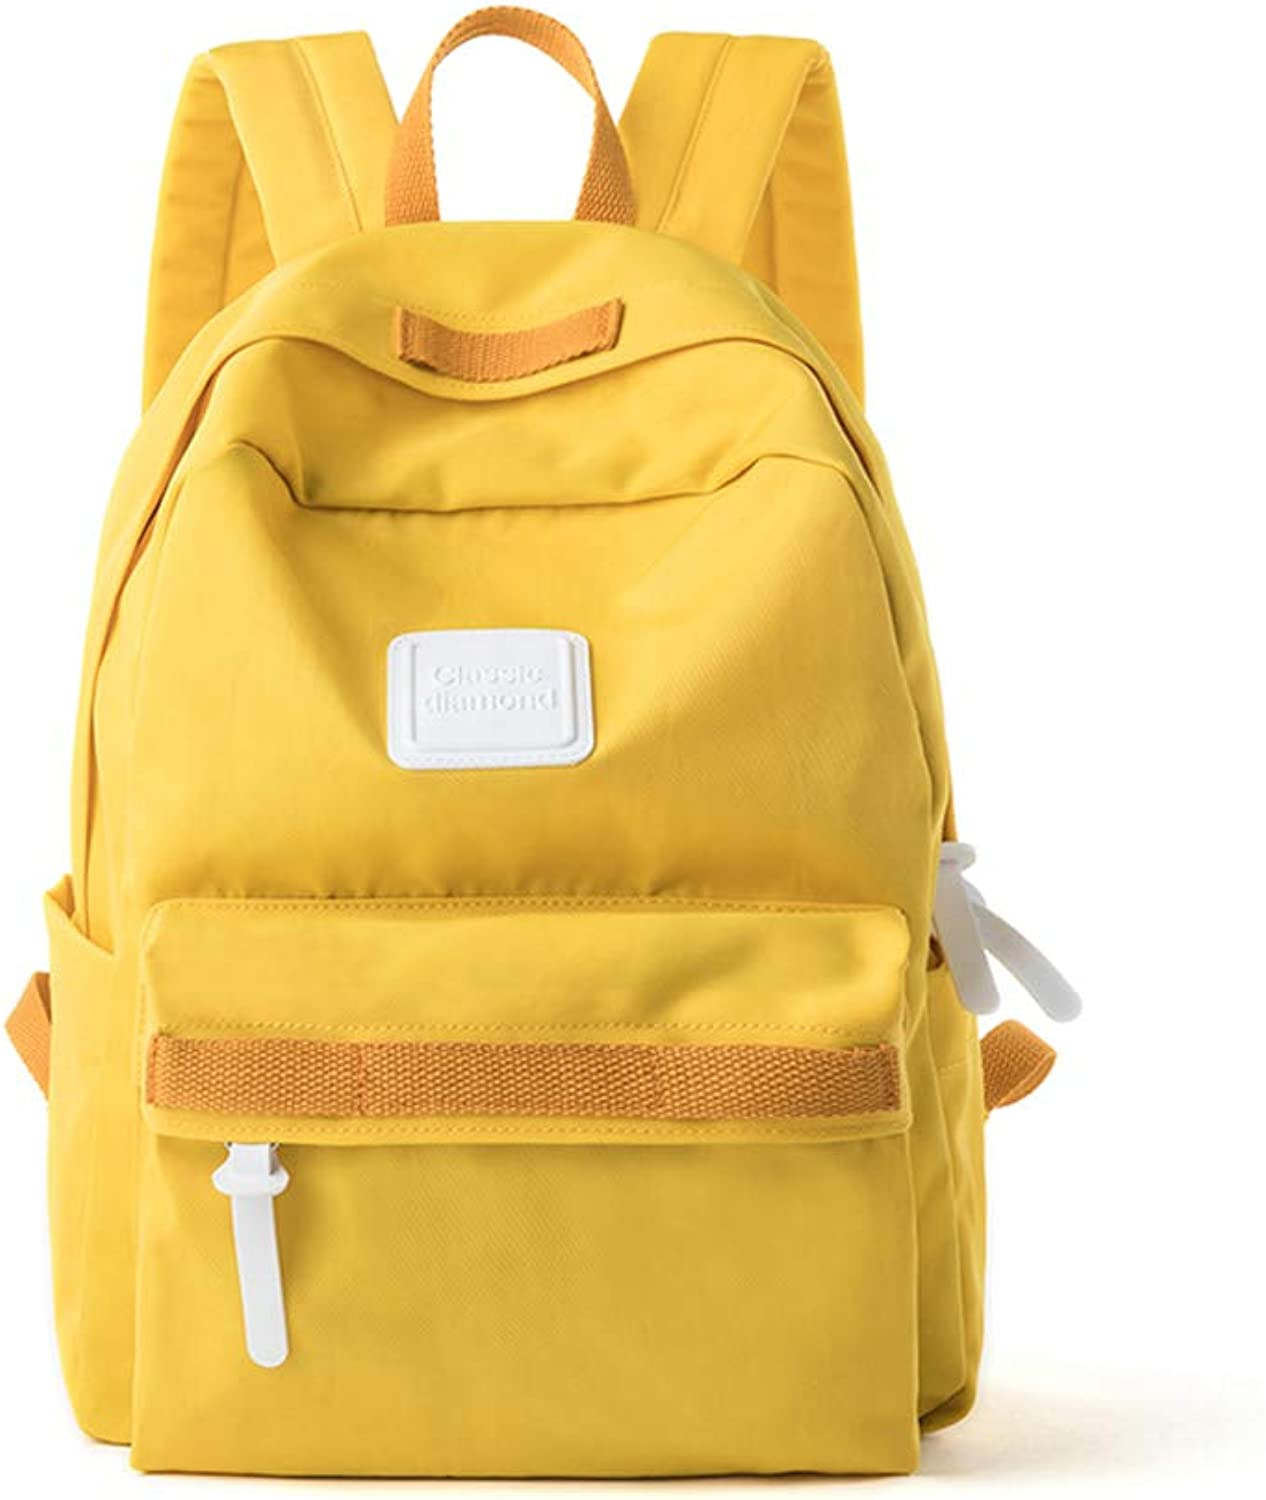 Backpack simple wild campus backpack spring and summer new girls school bag Korean version of college students tide female small fresh,yellow